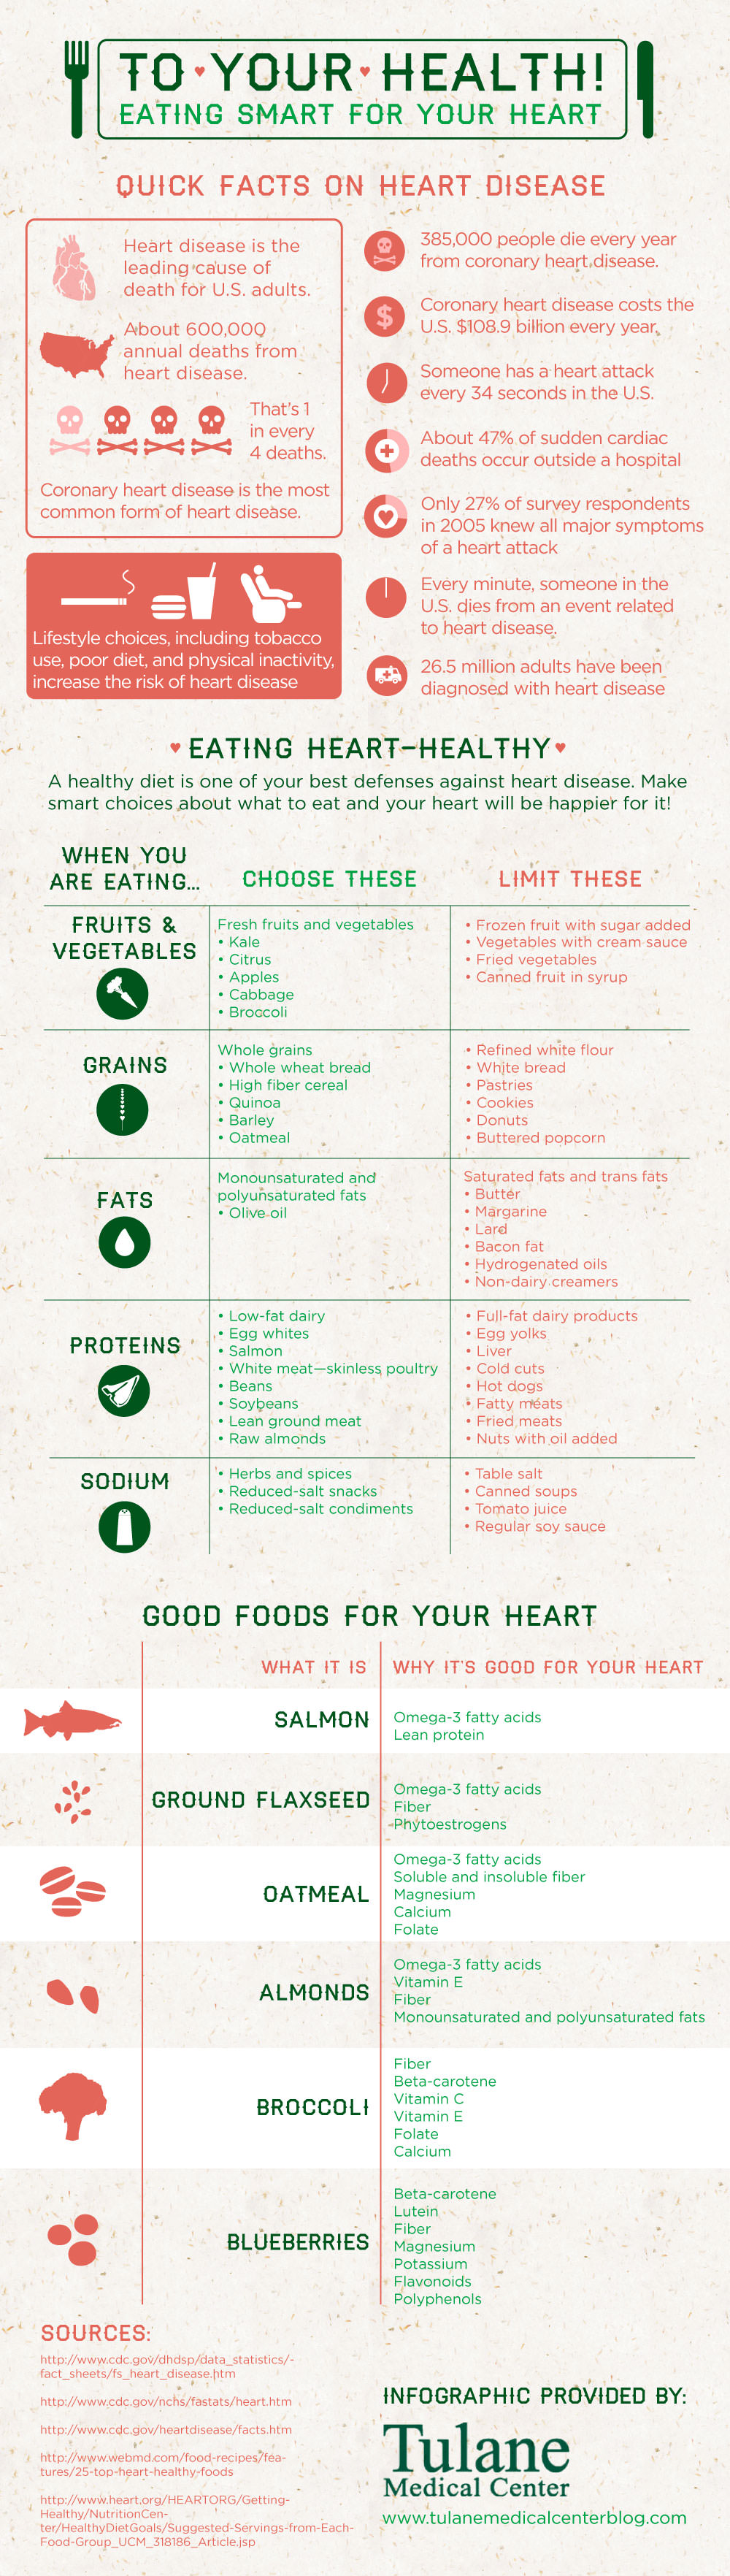 Eating for a Healthy Heart Infographic